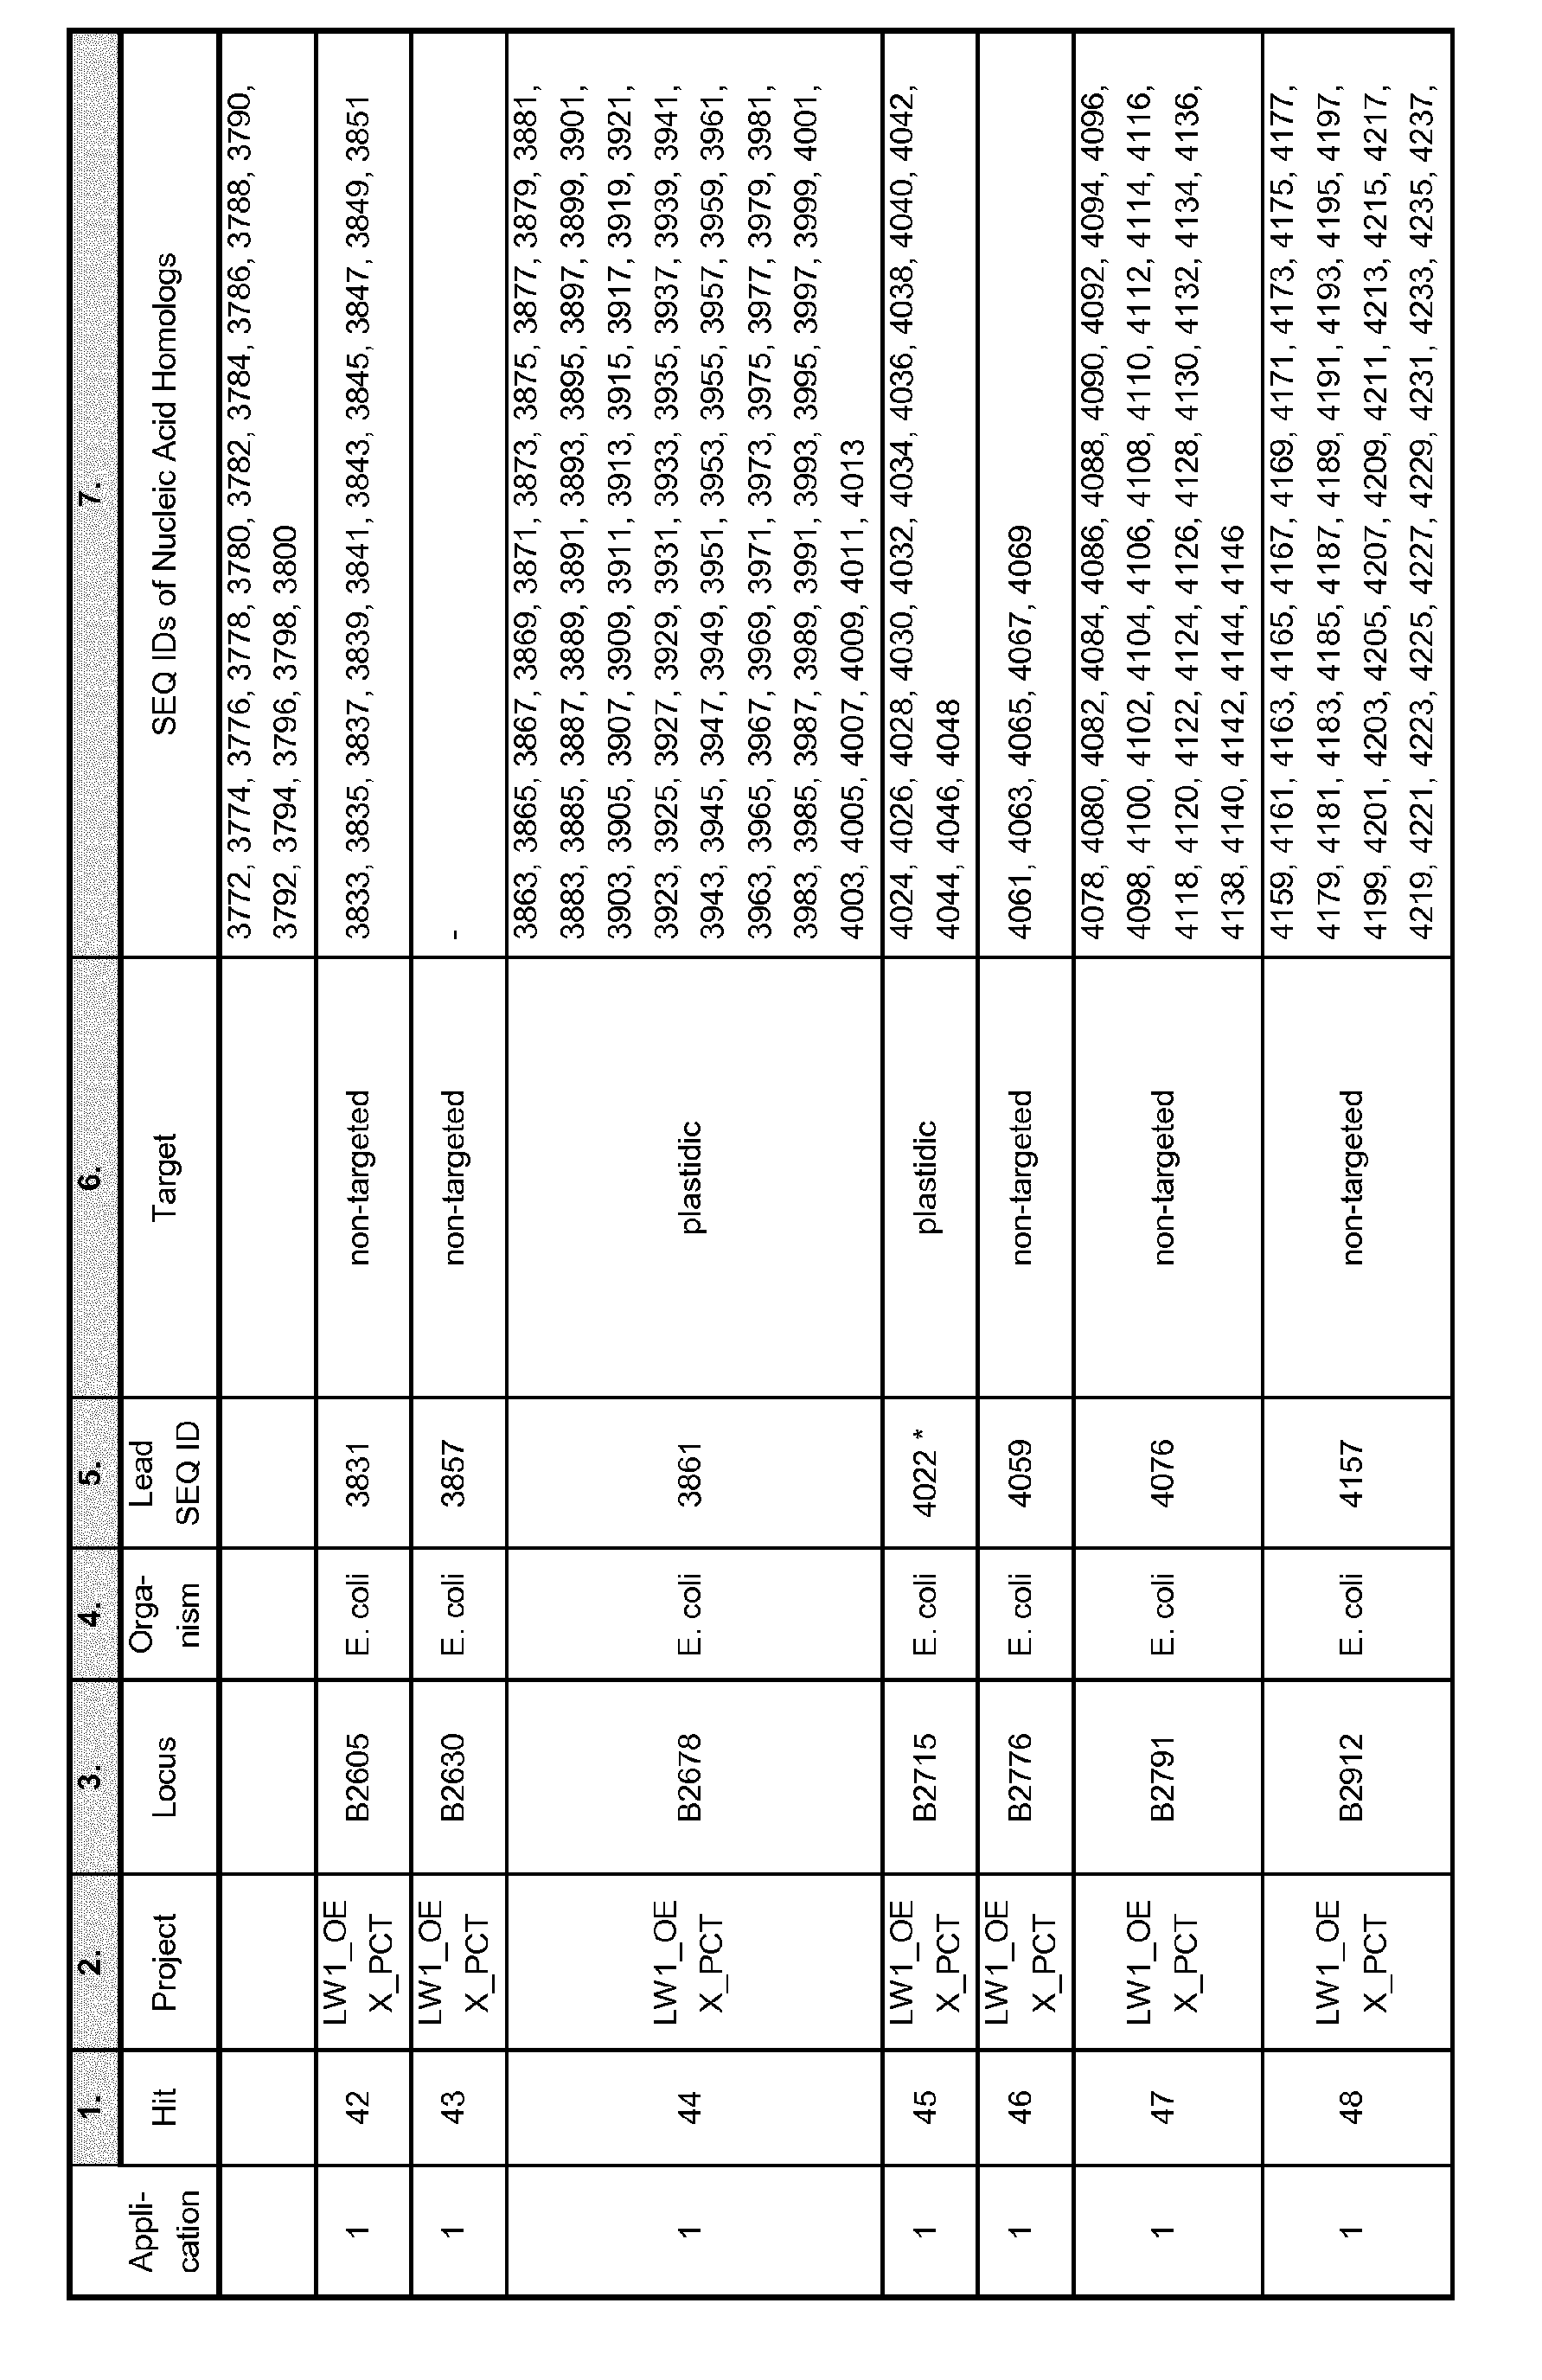 Plants with increased tolerance and/or resistance to